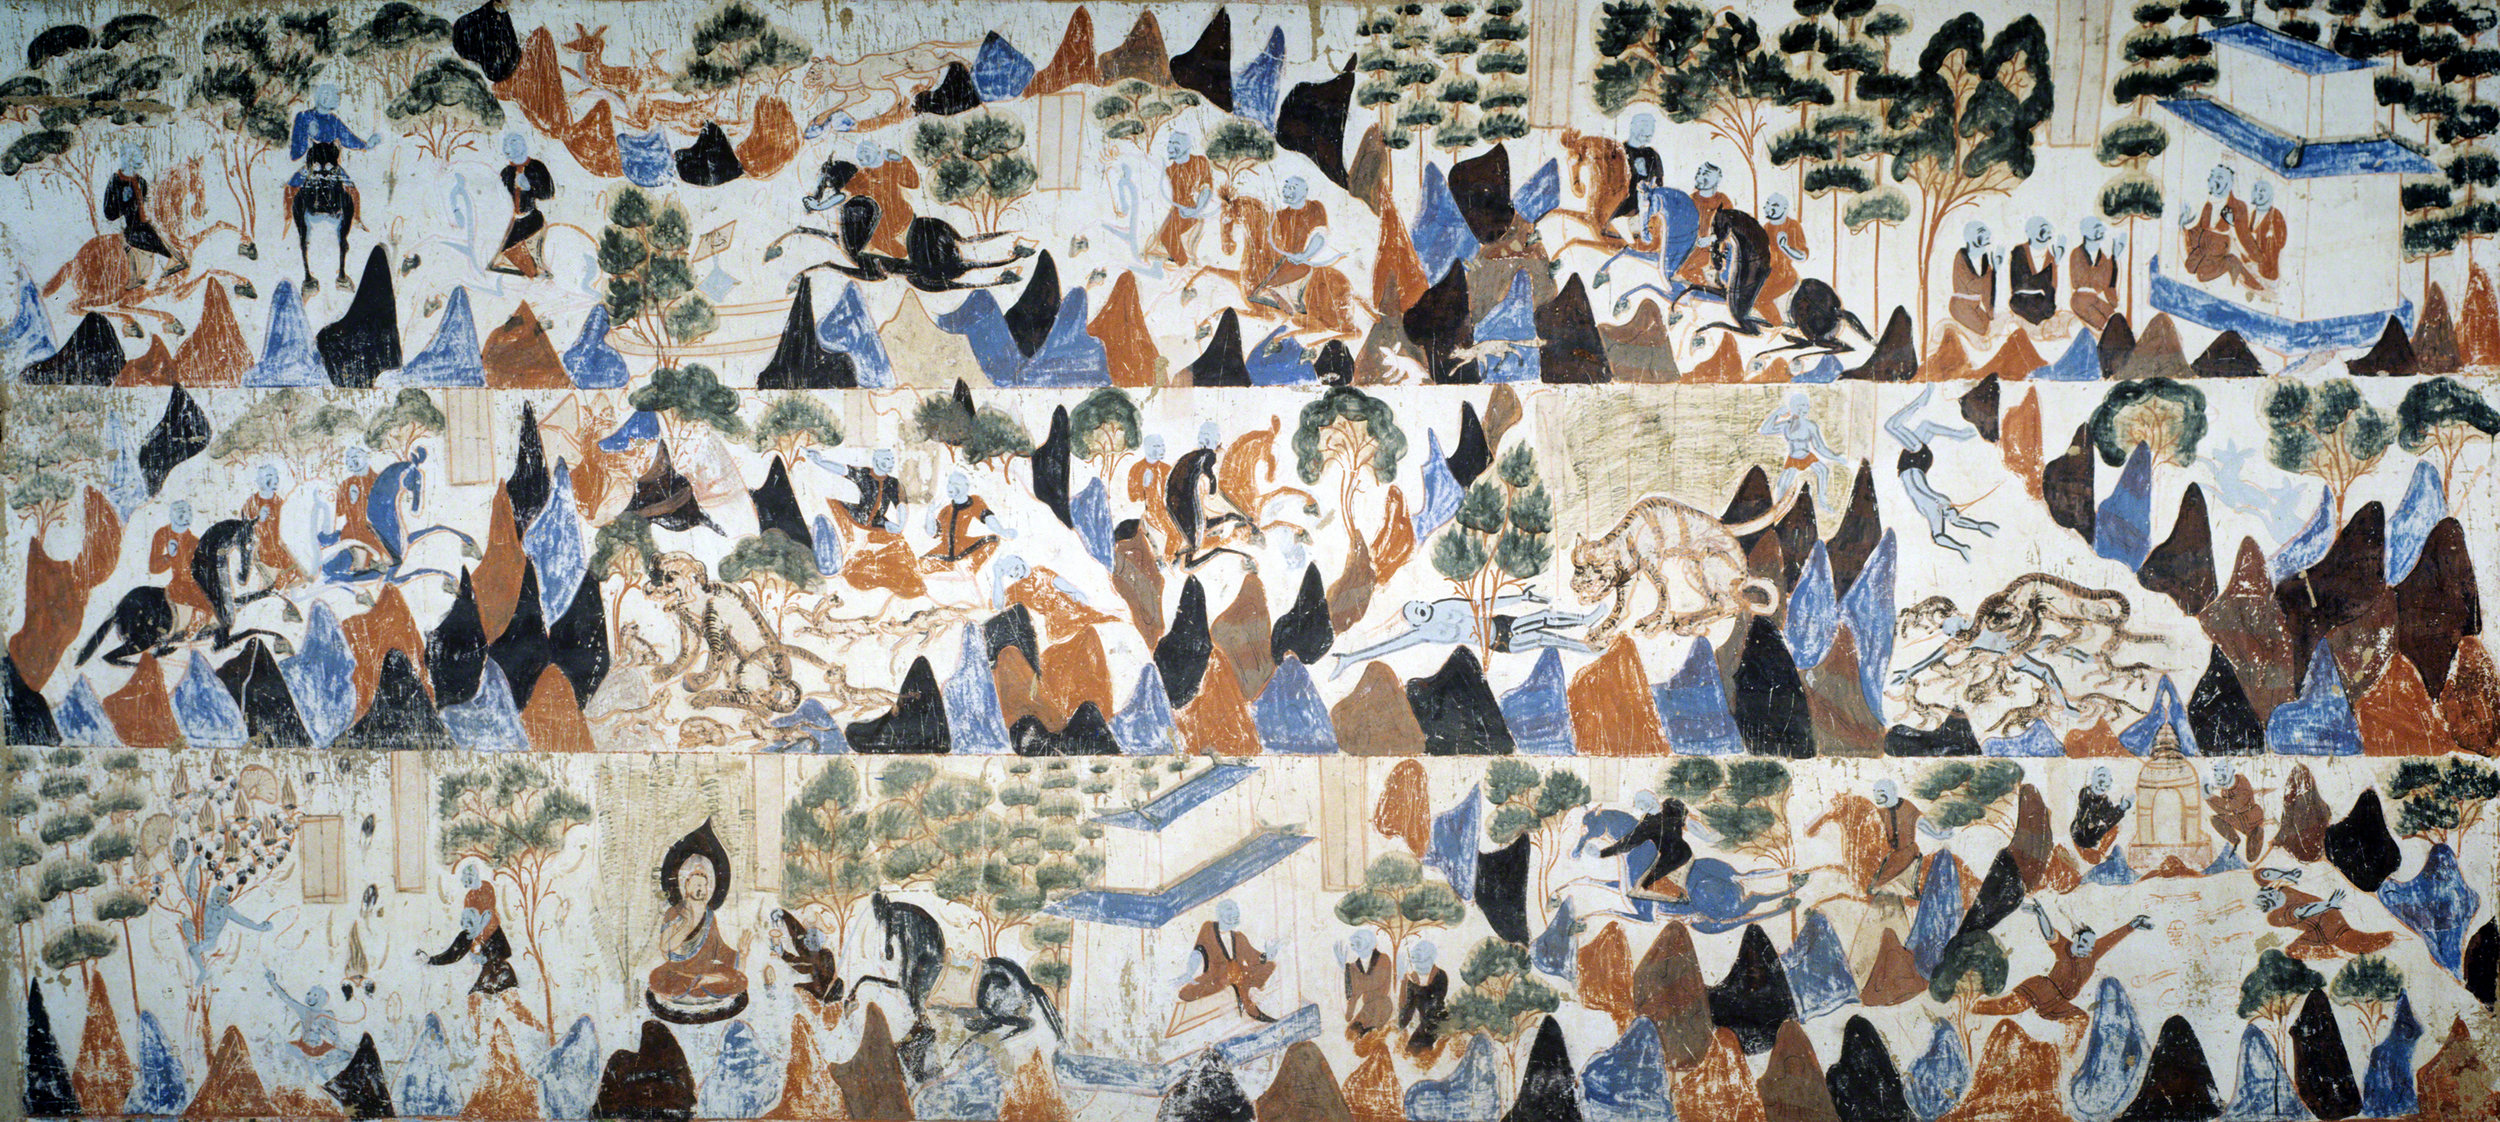 The complete Prince Mahasattva jataka tale mural. Mogao Cave 428. Northern Zhou, 557-581 CE. Dunhuang. Image courtesy of the Dunhuang Academy.